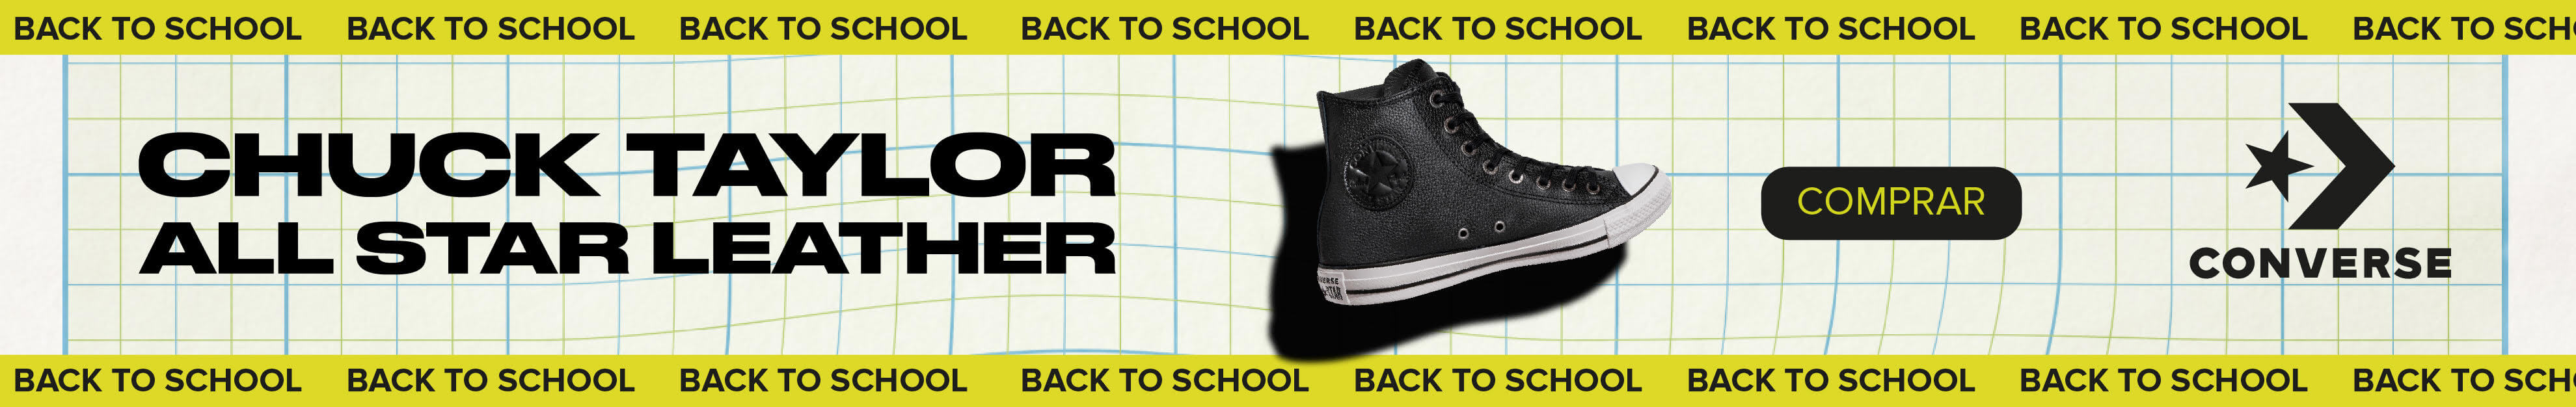 Back To School Converse